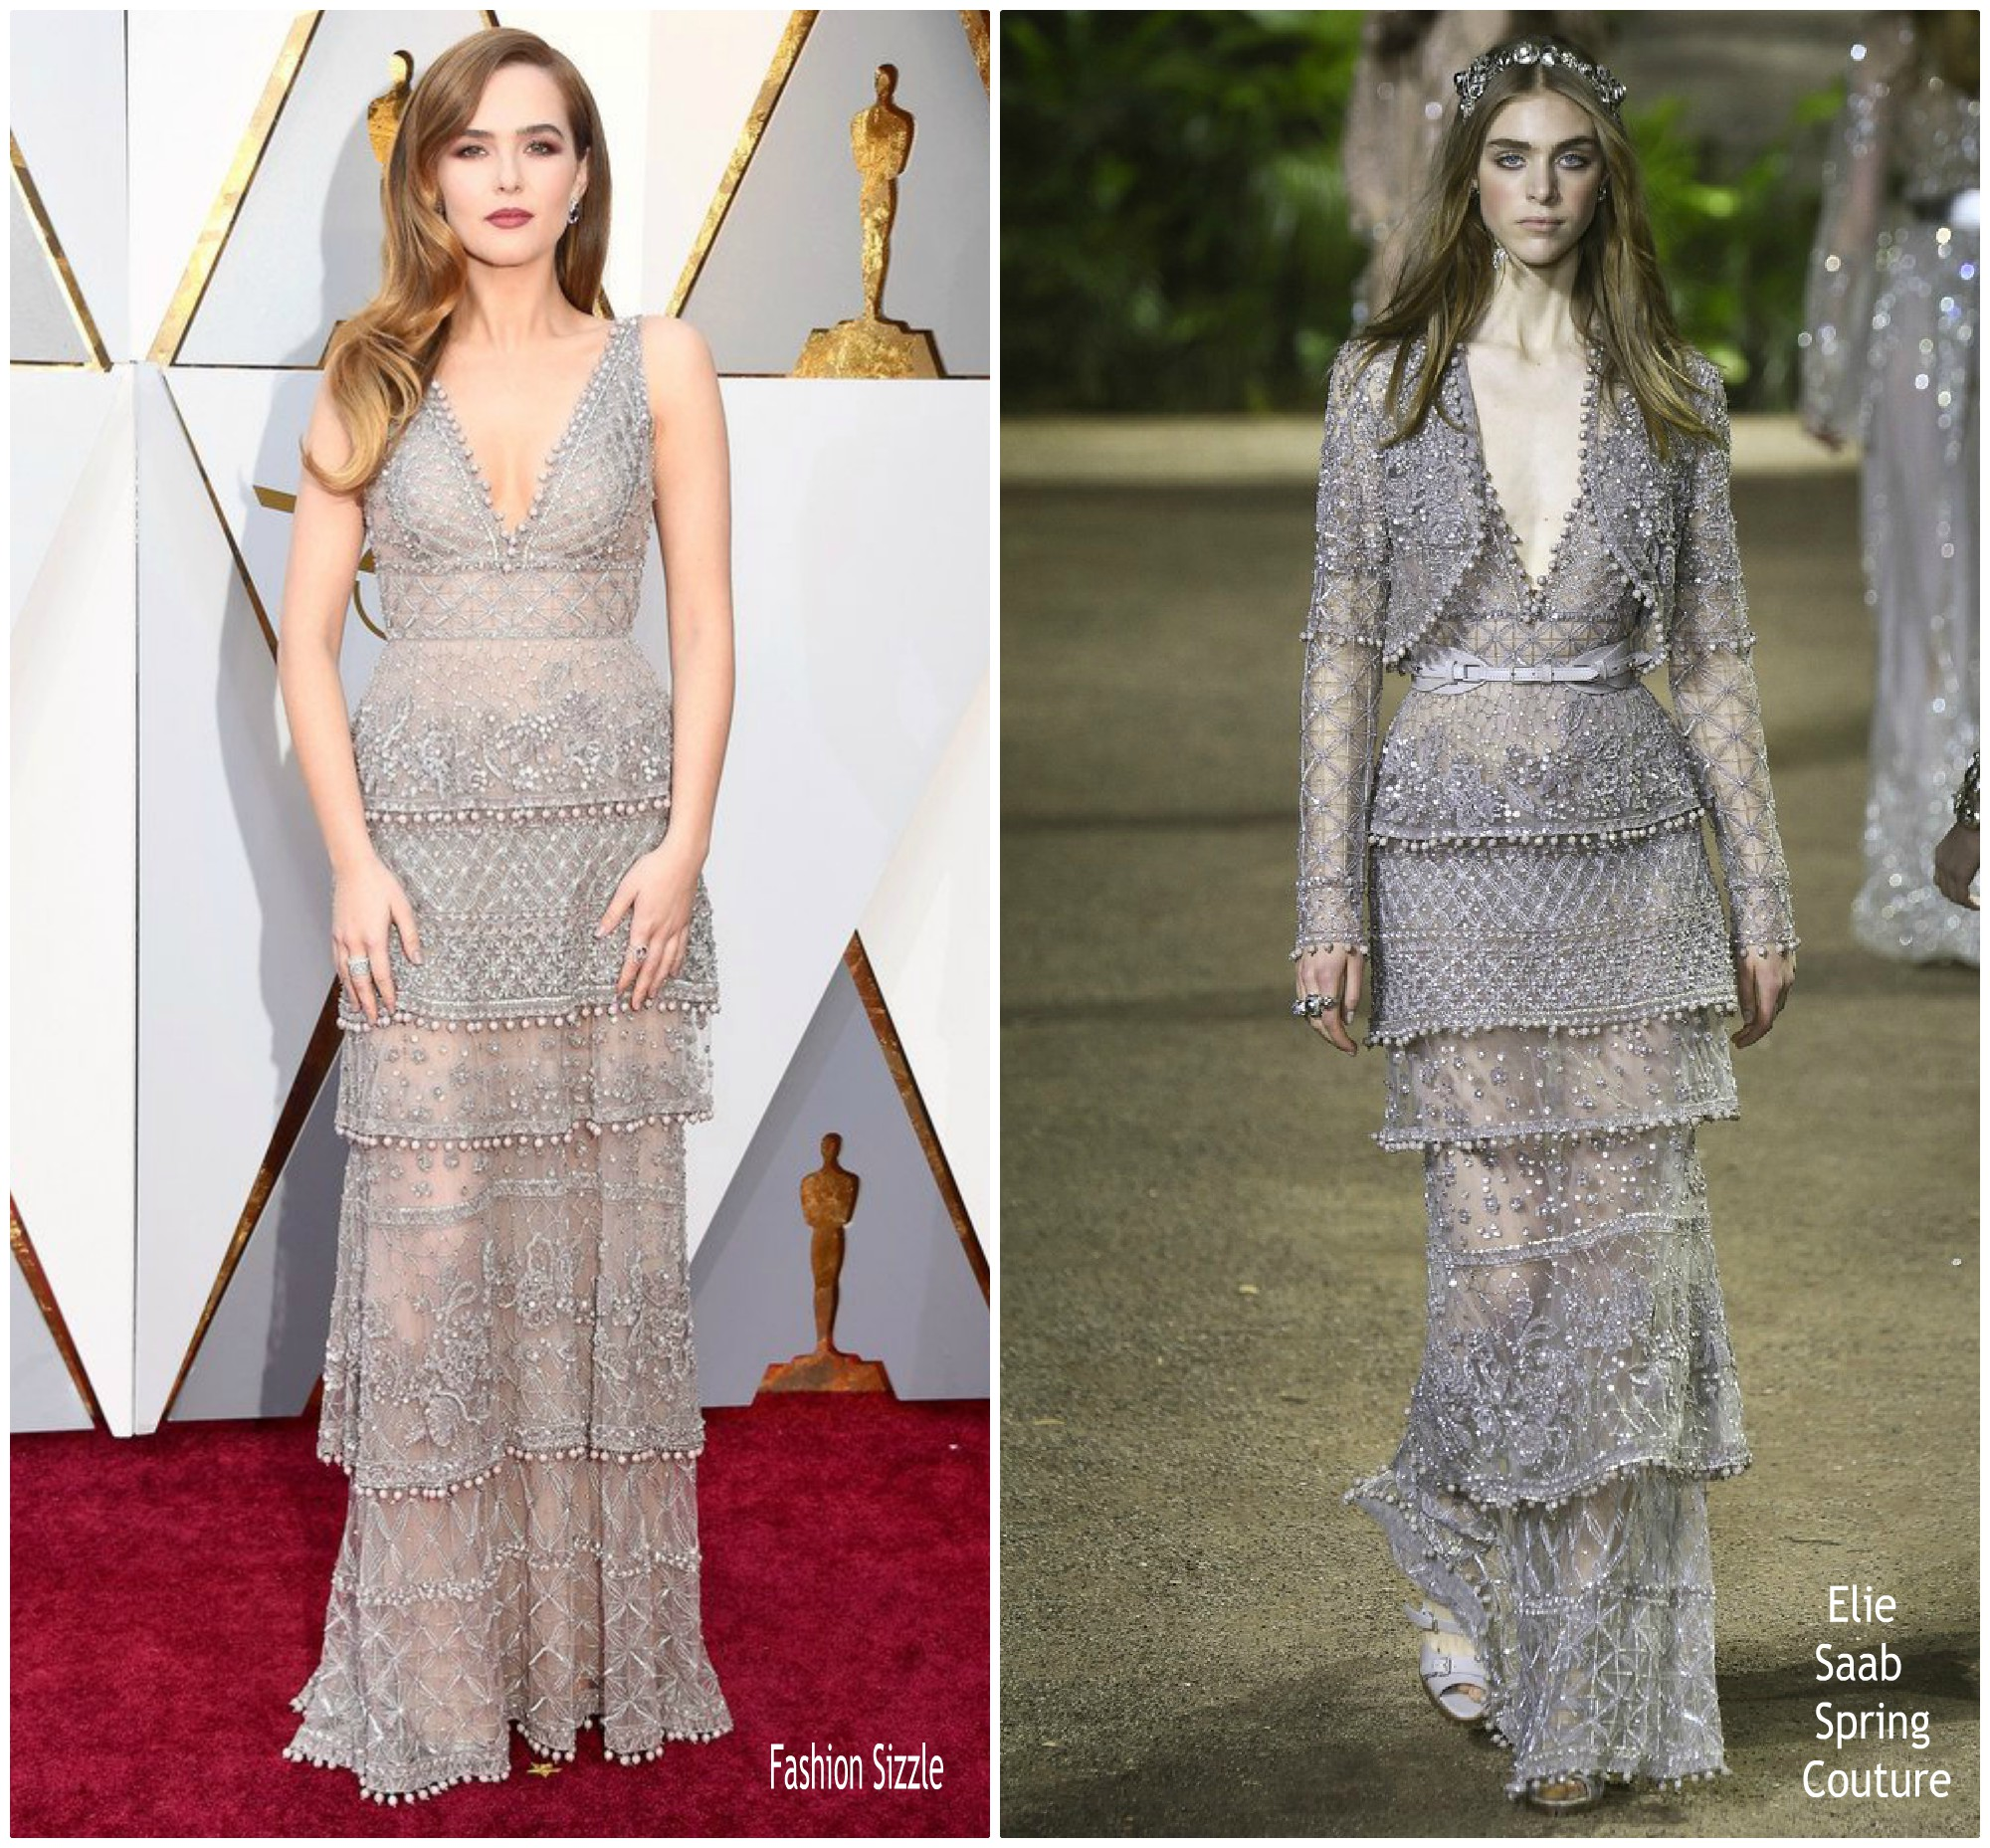 zoey-deutch-in-elie-saab-couture-2018-oscars